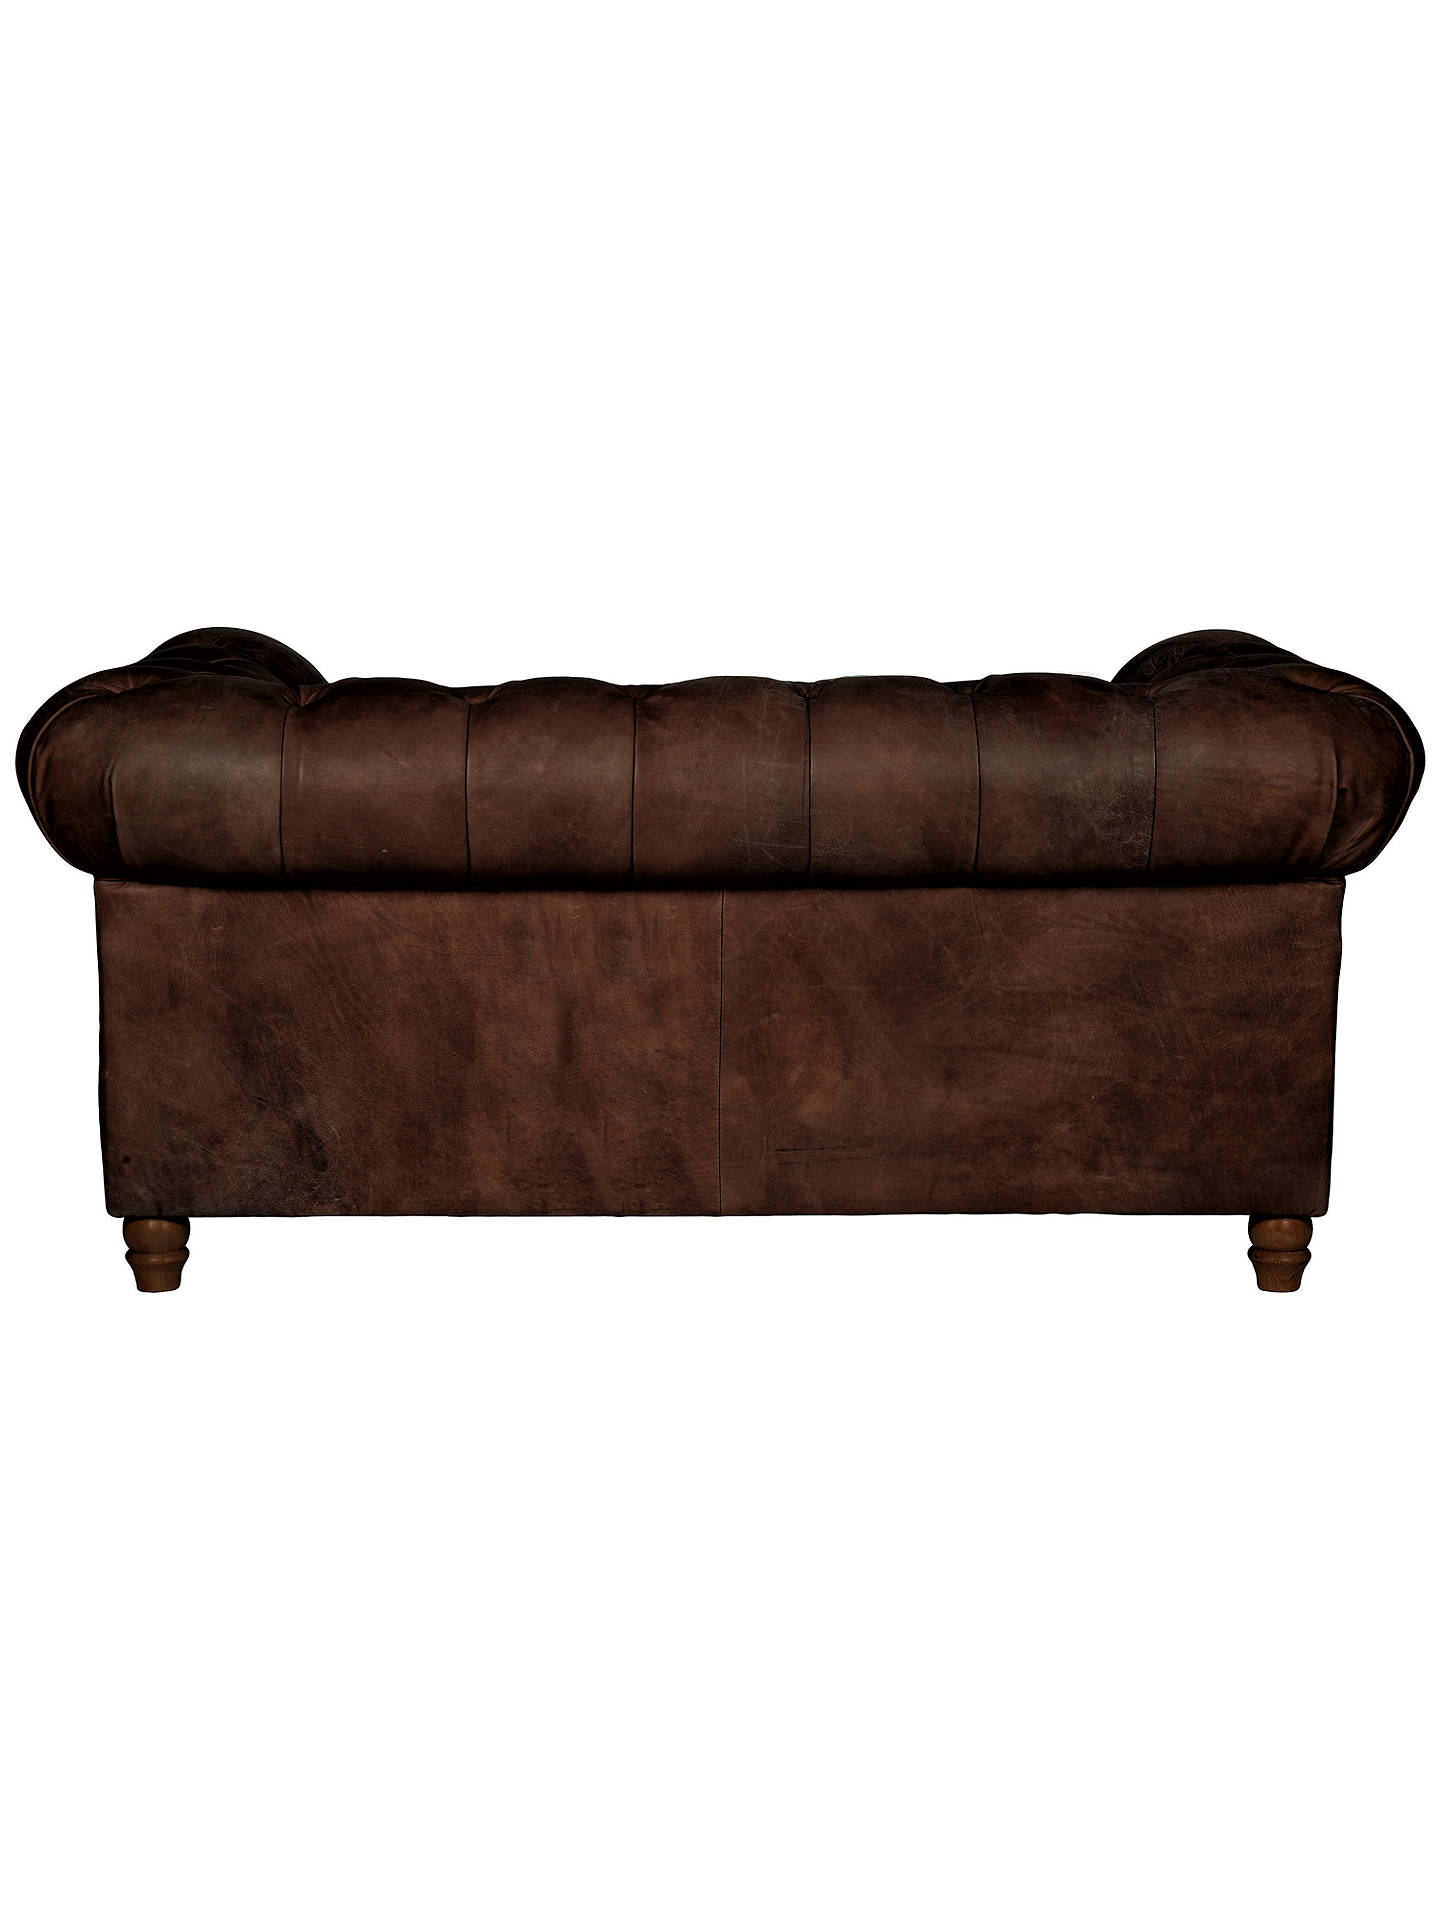 Buy Halo Earle Chesterfield Medium 2 Seater Leather Sofa, Riders Cocoa Online at johnlewis.com